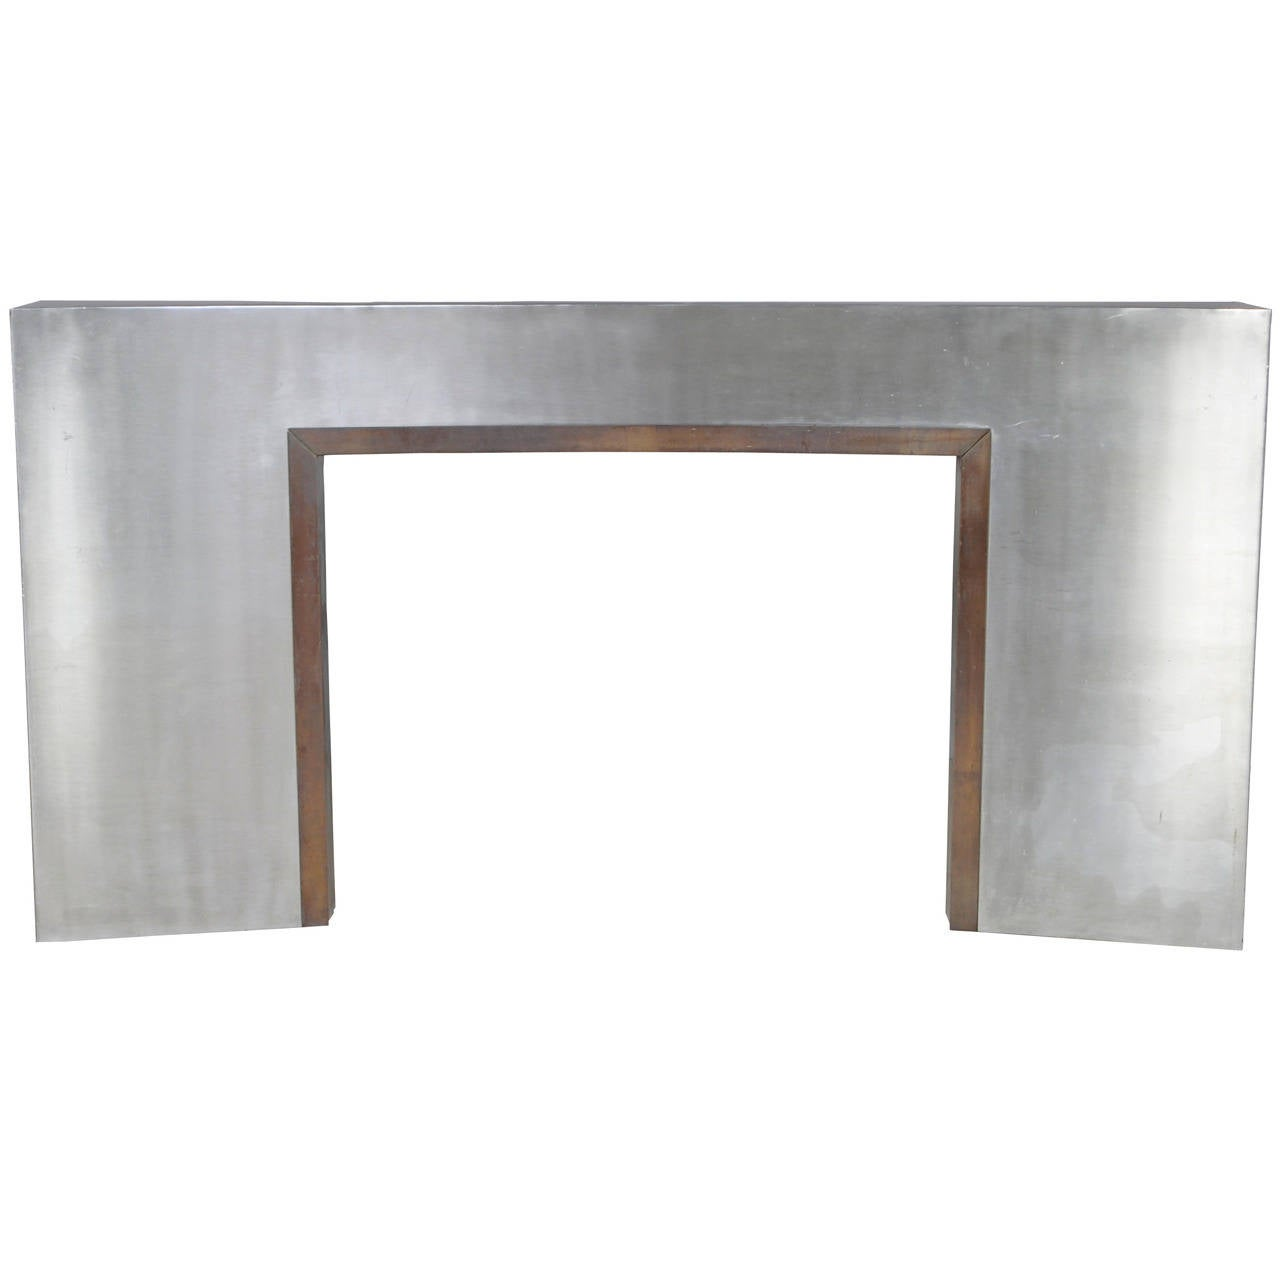 Stainless Steel Fireplace 1970s At 1stdibs